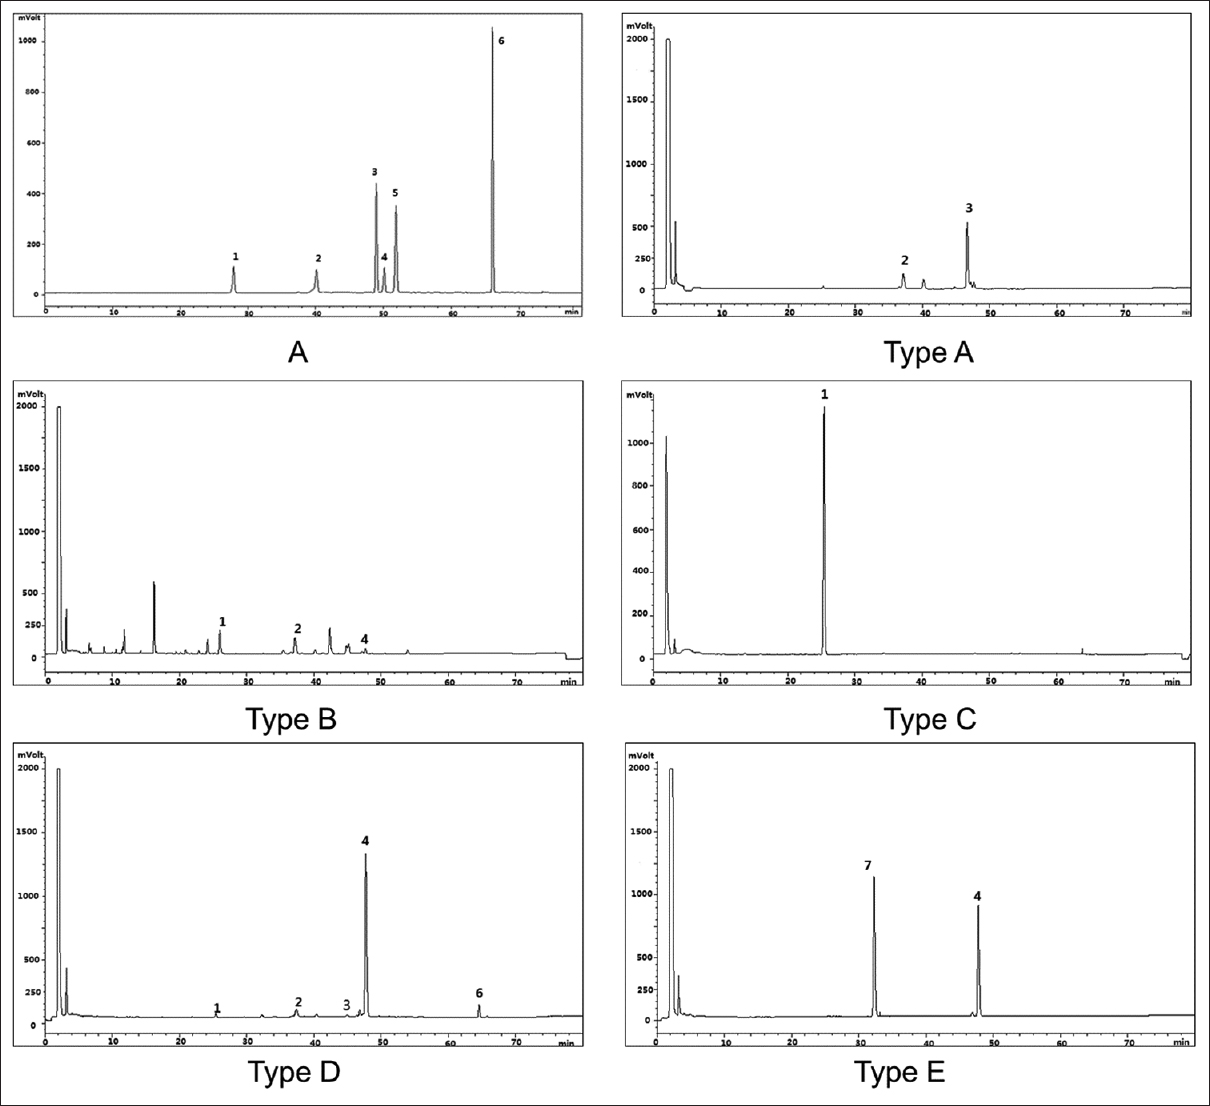 Figure 2: The typical chromatogram of the standard mixtures (A); the typical chromatogram of representative samples. (Type A: S10; Type B: S2; Type C: S24; Type D: S36; Type E: S35). 1: Croomine, 2: Stemoninine, 3: Tuberostemonine, 4: Neotuberostemonine, 5: Bisdehydrostemonine, 6: Tuberostemonine D, 7: Tuberostemonine K